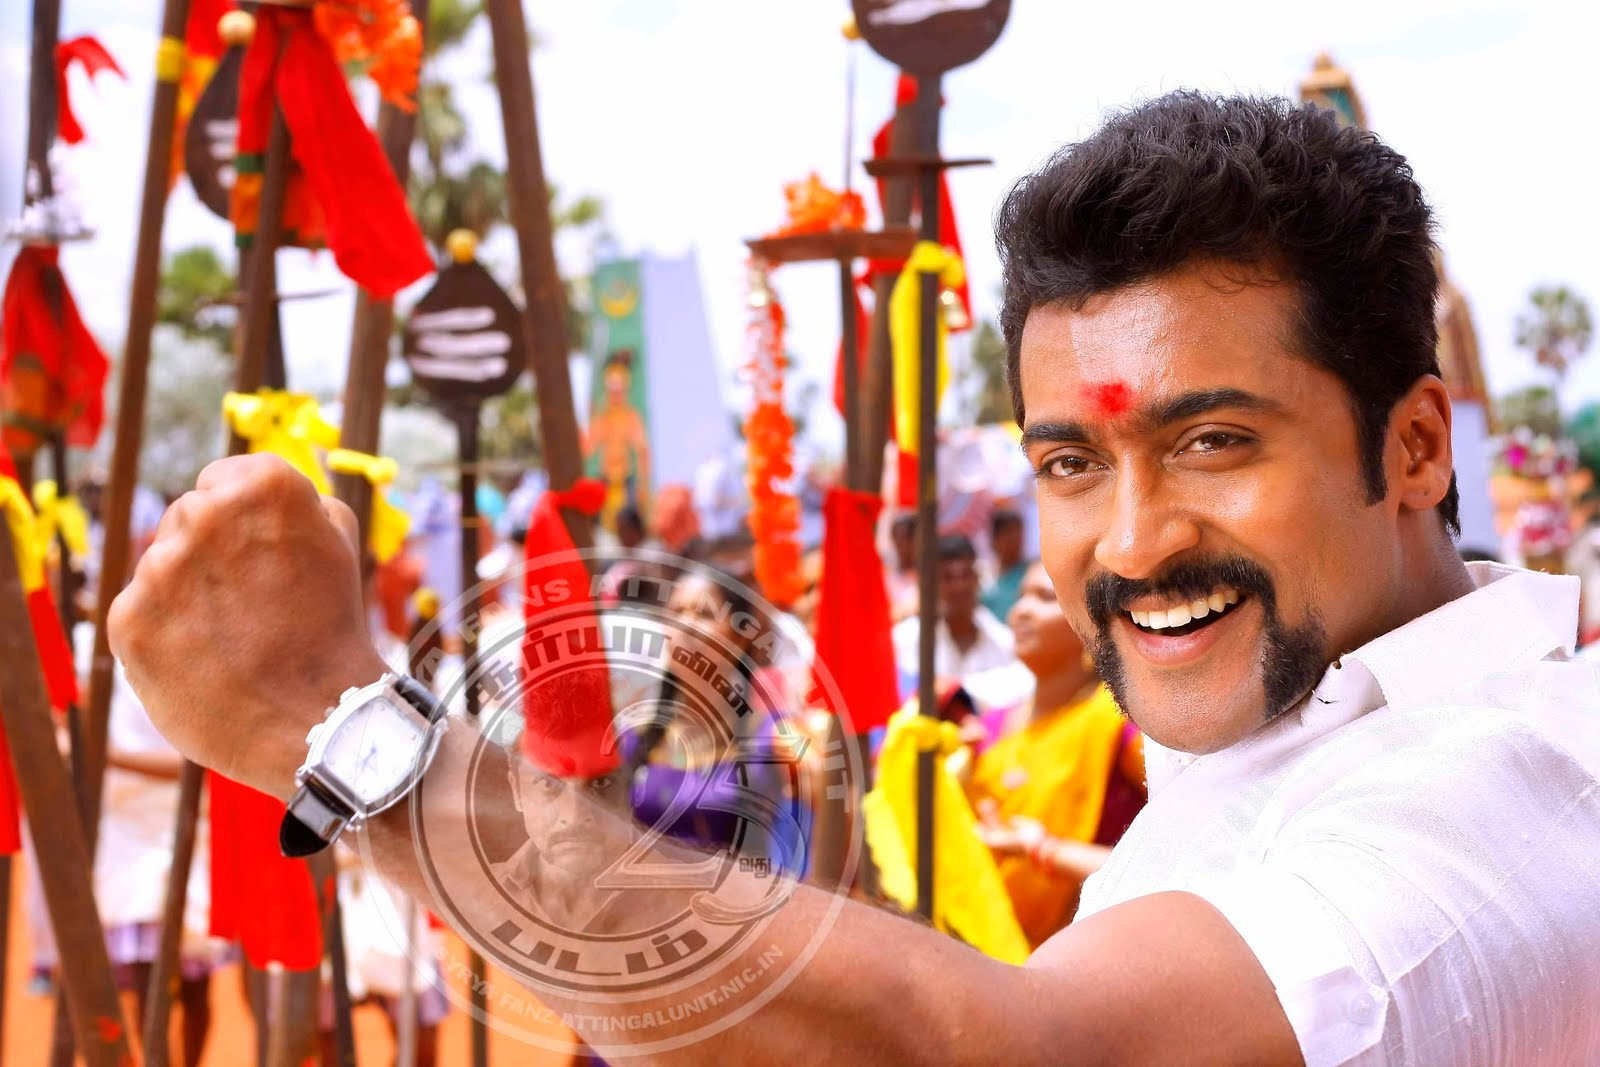 SINGAM 2 FULL MOVIE  INDIAN MOVIES WITH ENGLISH SUBTITLES